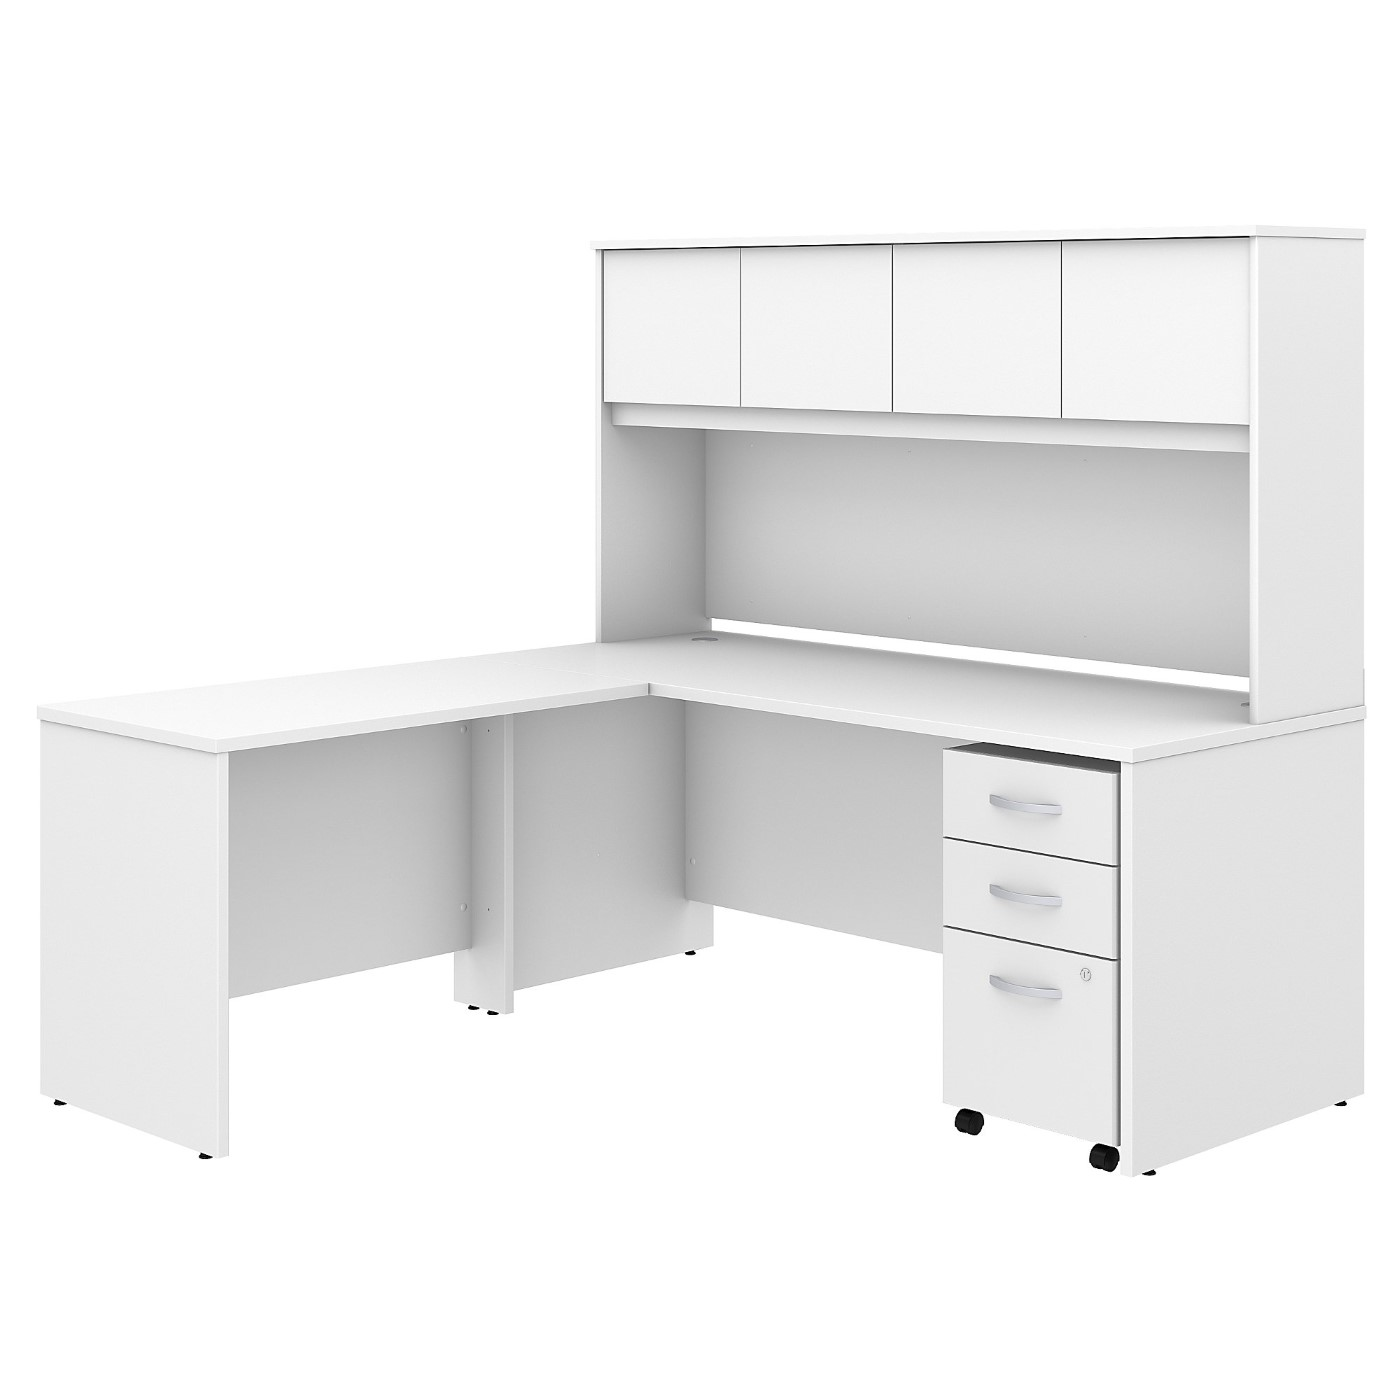 BUSH BUSINESS FURNITURE STUDIO C 72W X 30D L SHAPED DESK WITH HUTCH, MOBILE FILE CABINET AND 42W RETURN. FREE SHIPPING